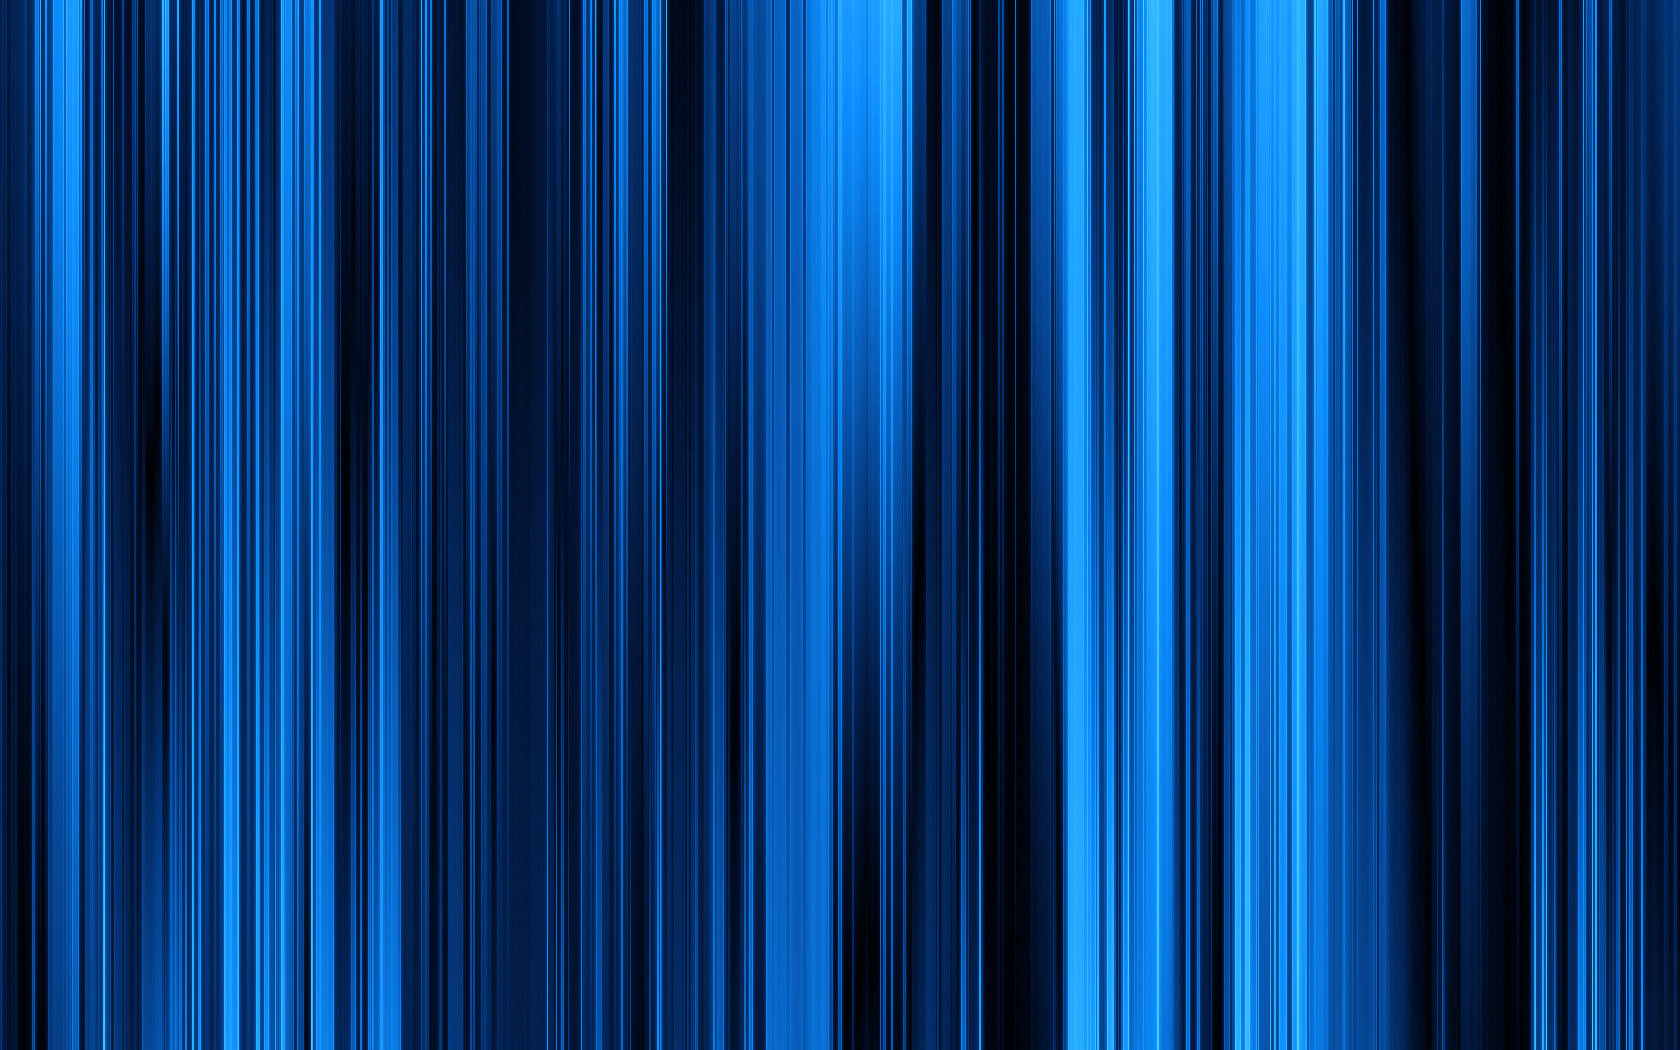 Blue Stripes by SxyfrG 1680x1050